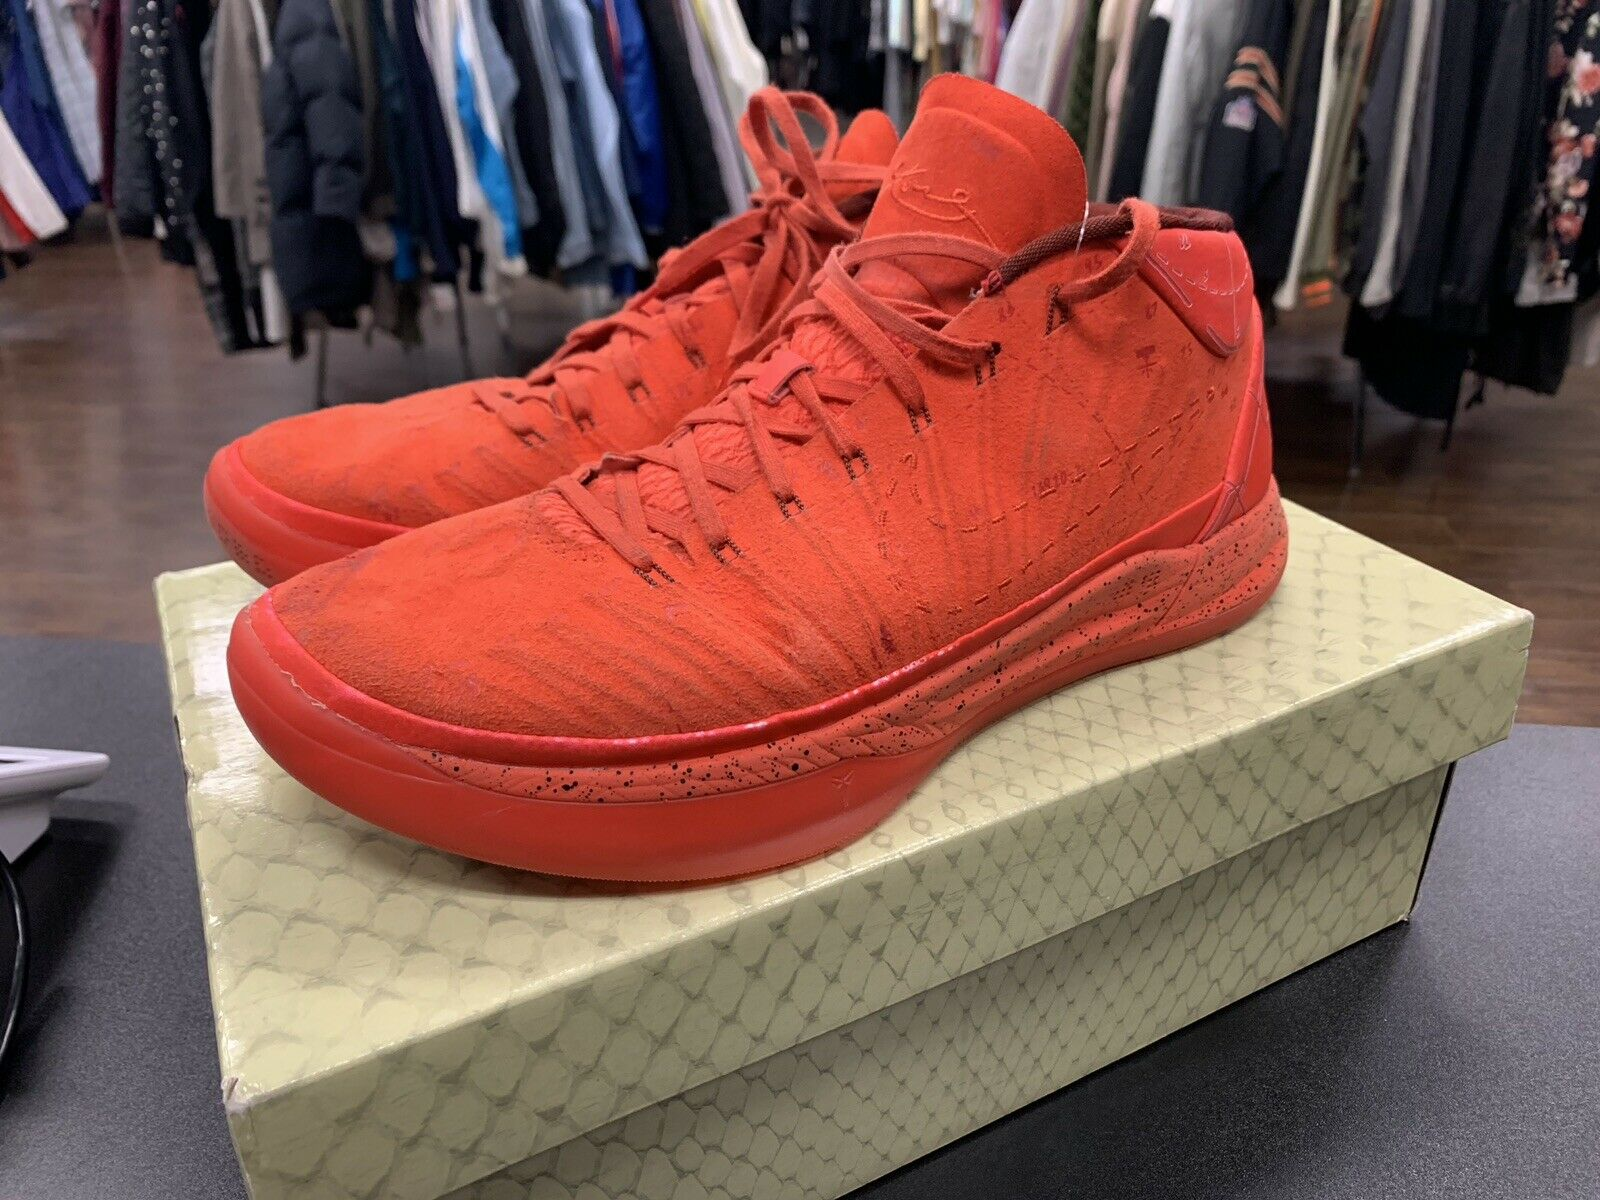 NIKE KOBE AD A.D. HABAblack RED MAMBA MENTALITY PASSION [922482-600] [922482-600] [922482-600] Size 10.5 ee218d